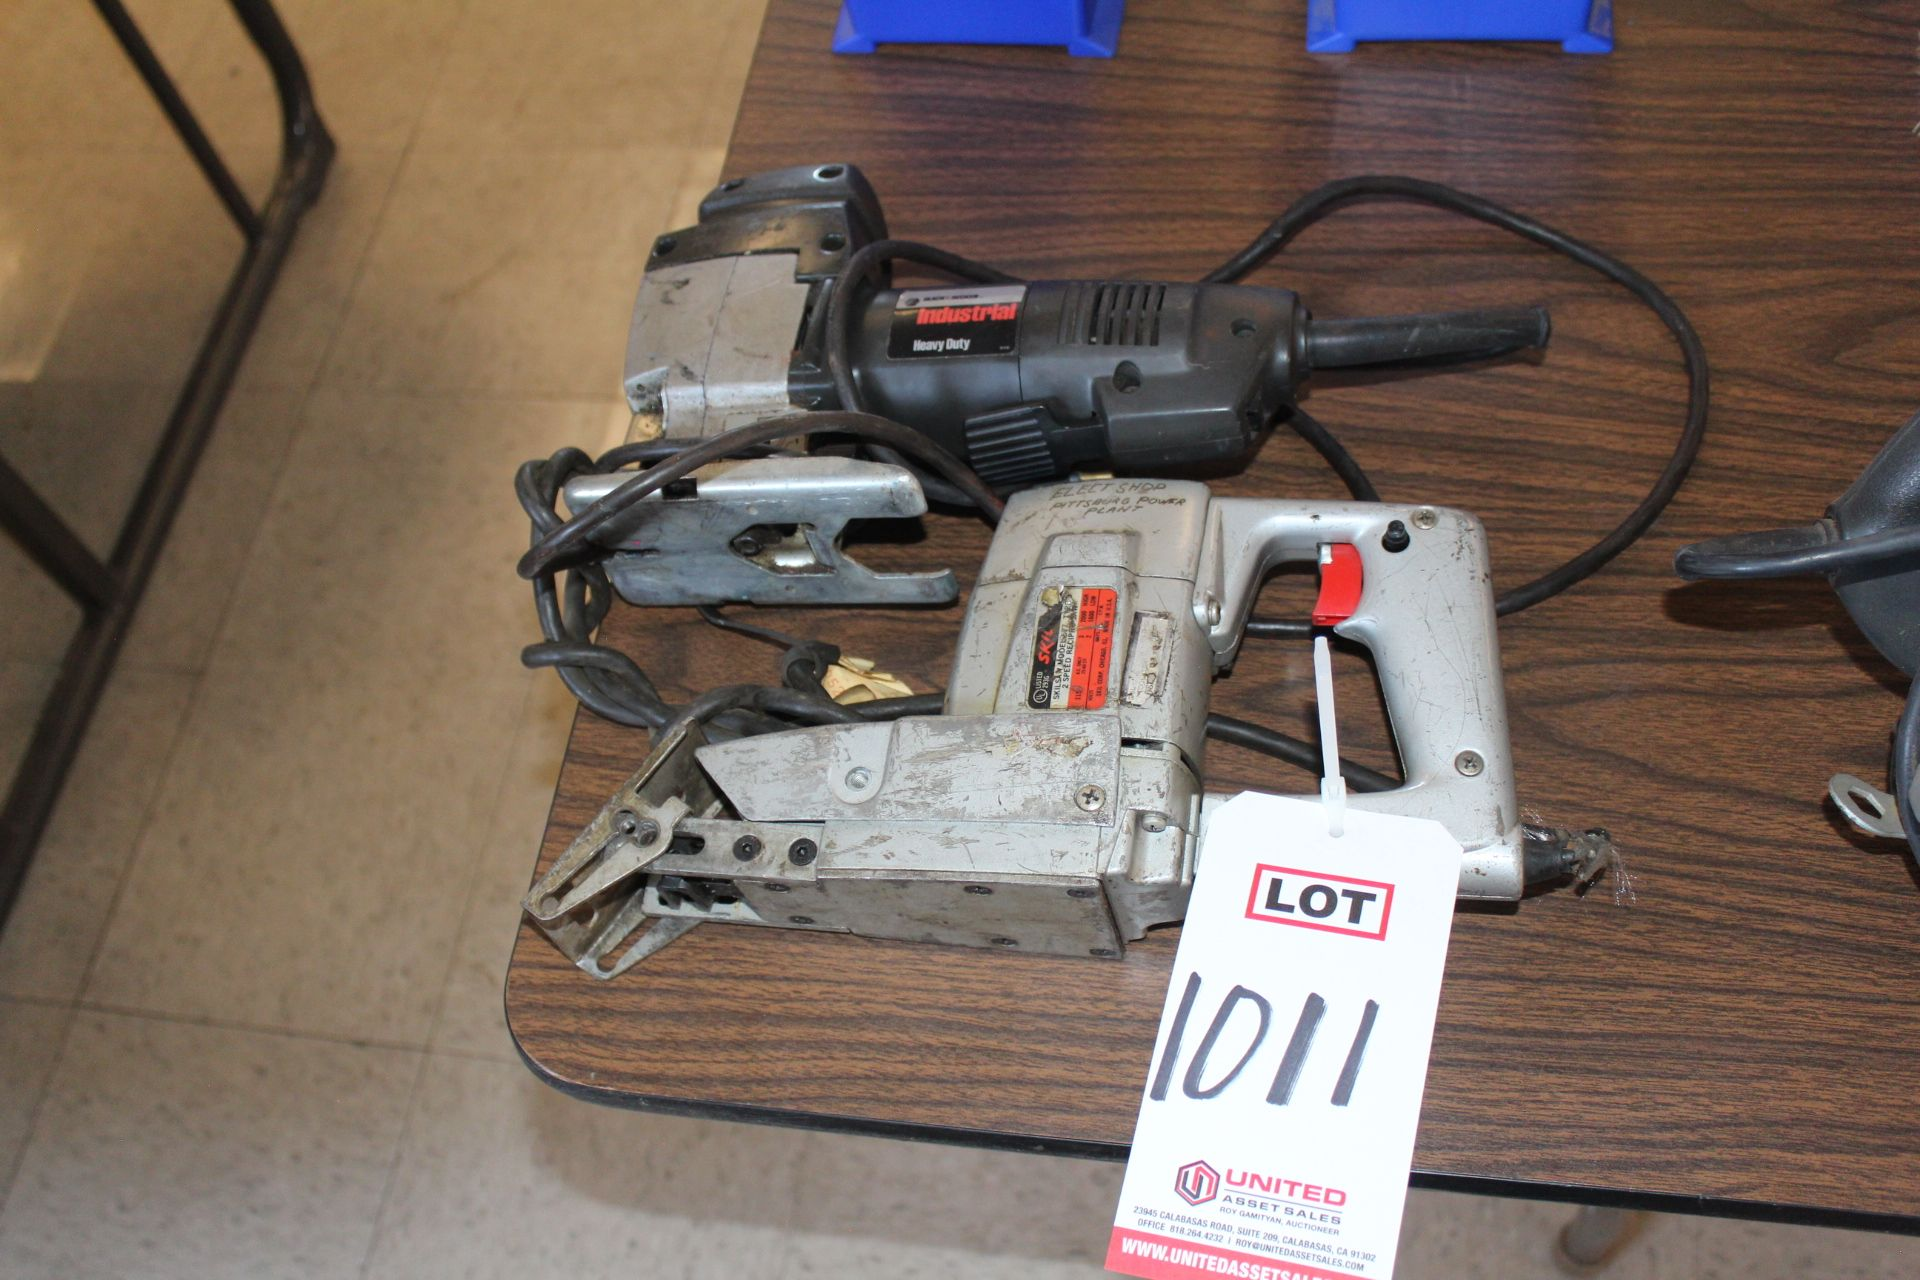 Lot 1011 - LOT - (2) ELECTRIC JIG SAWS, (LUNCHROOM)